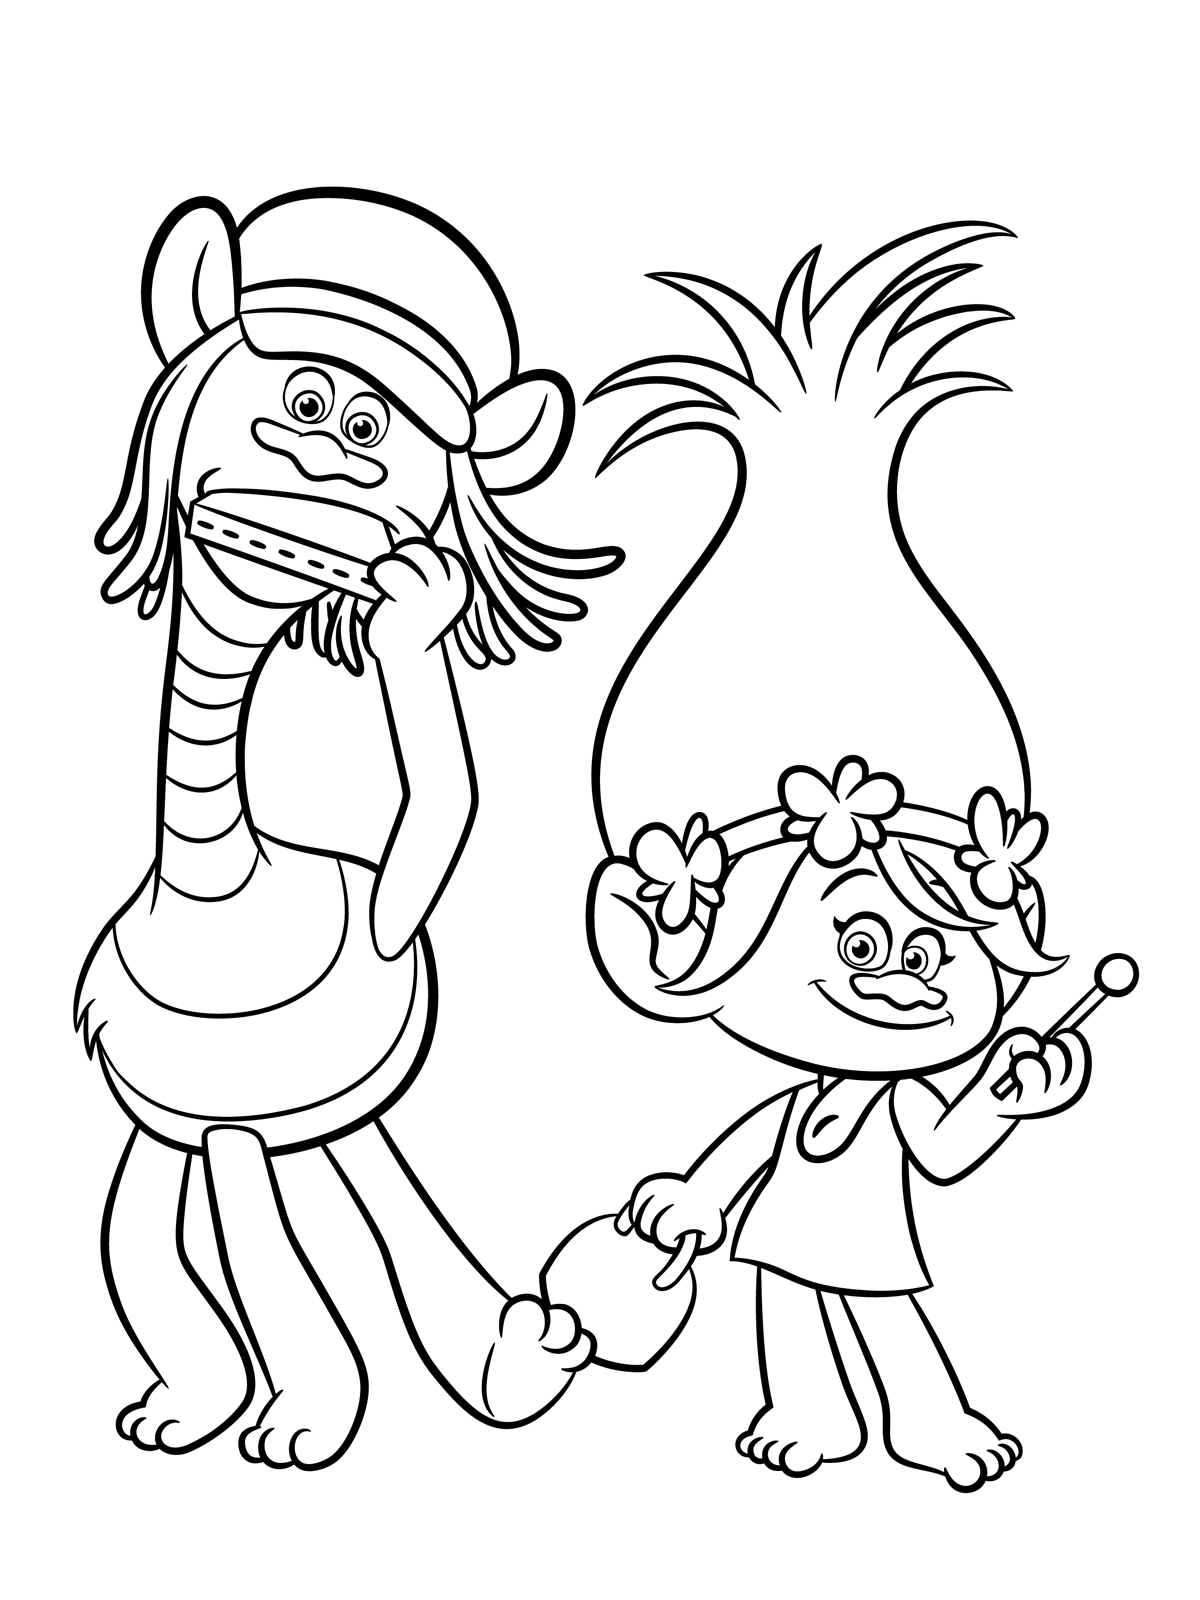 Trolls Coloring pages to download